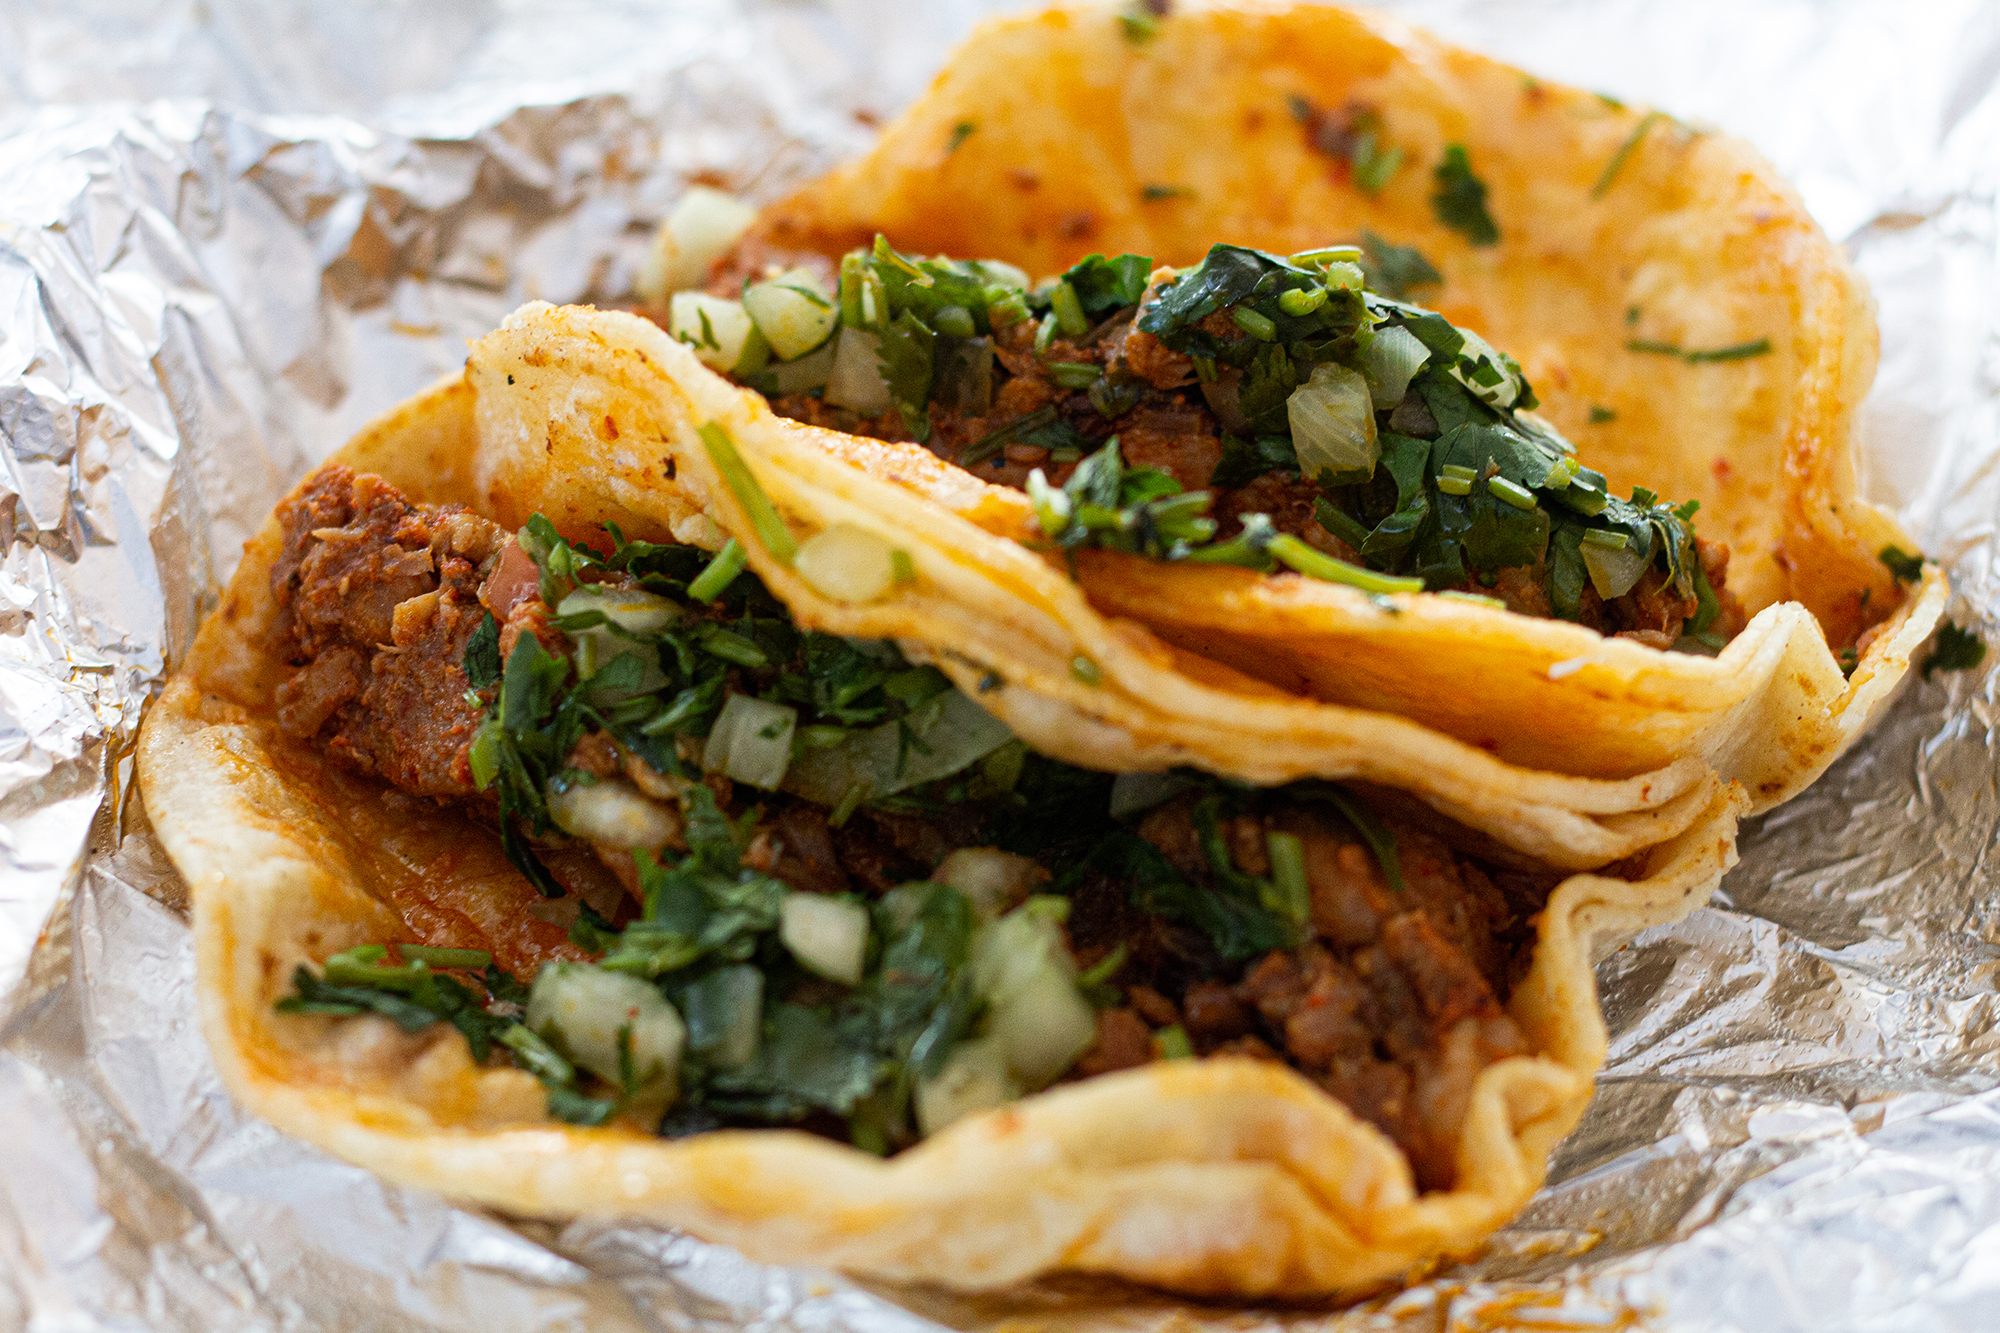 Two tacos packed with pork, pineapple, cilantro, and onion, wrapped with aluminum foil